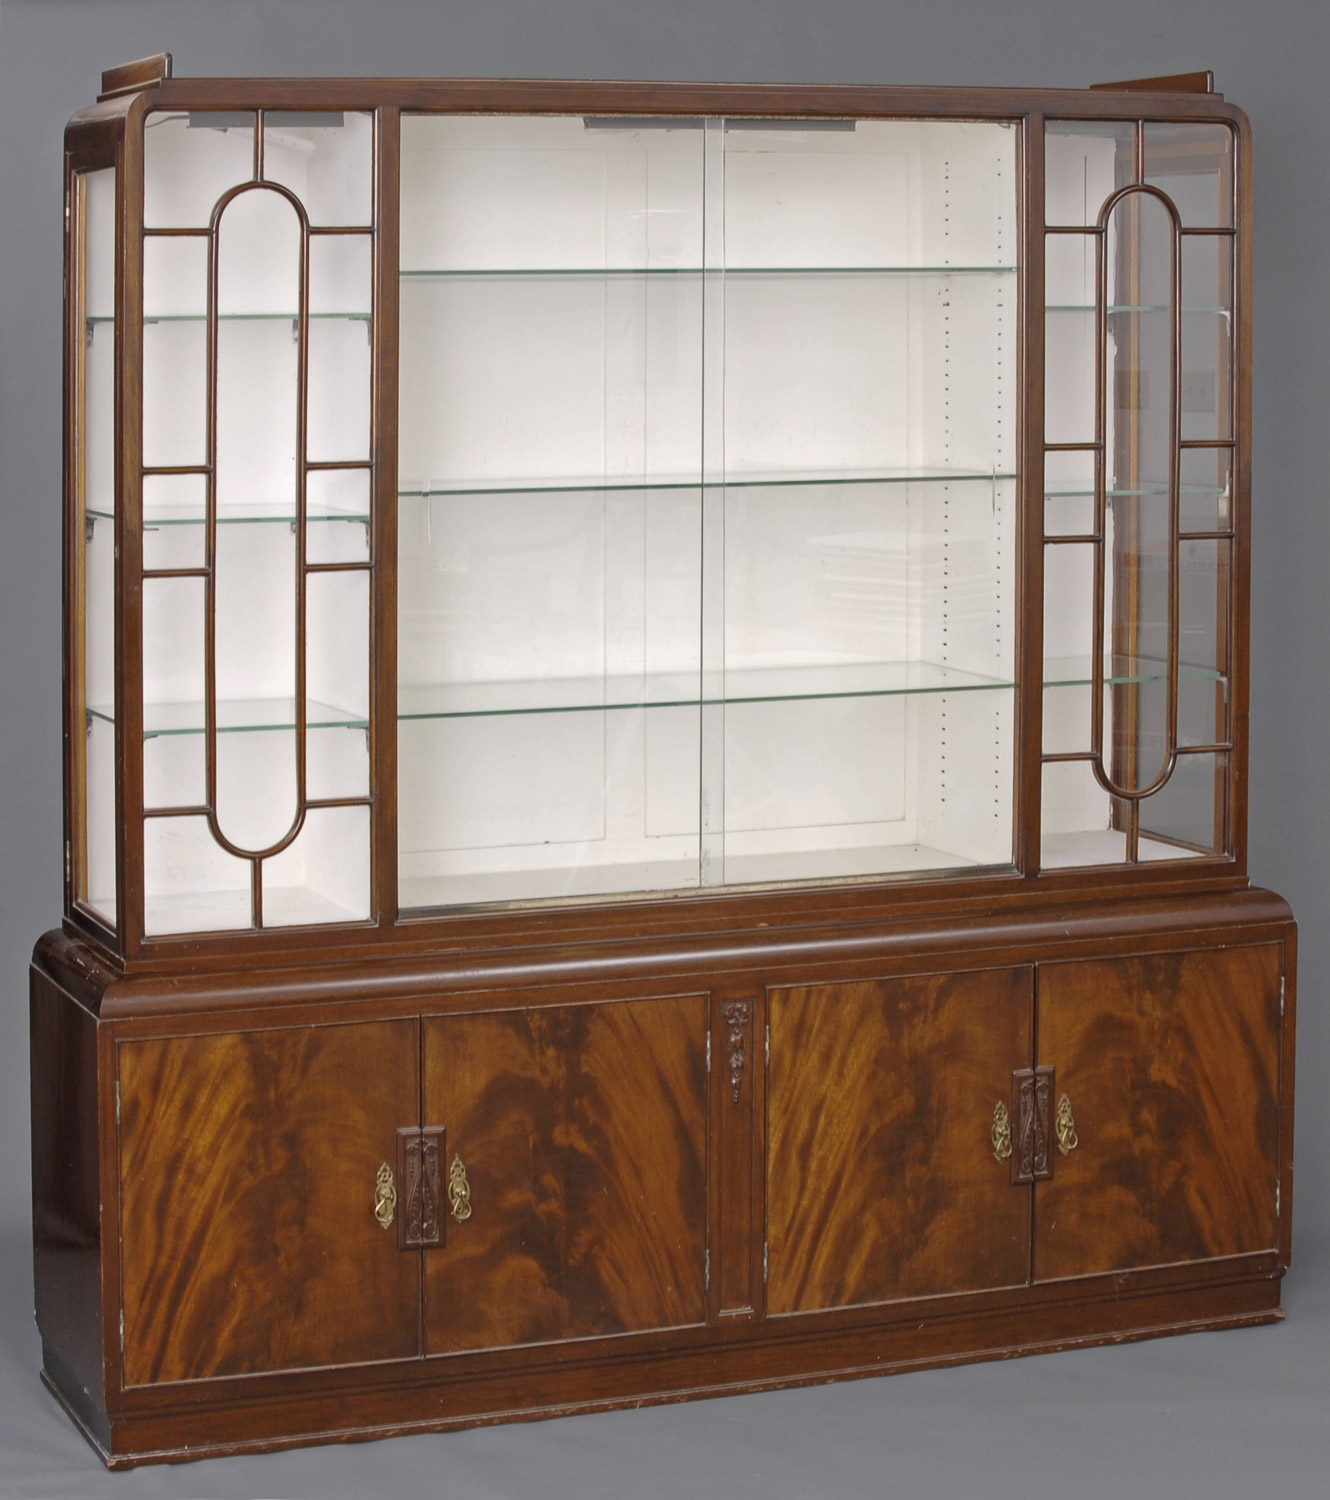 Product » Art Deco Display Cabinet